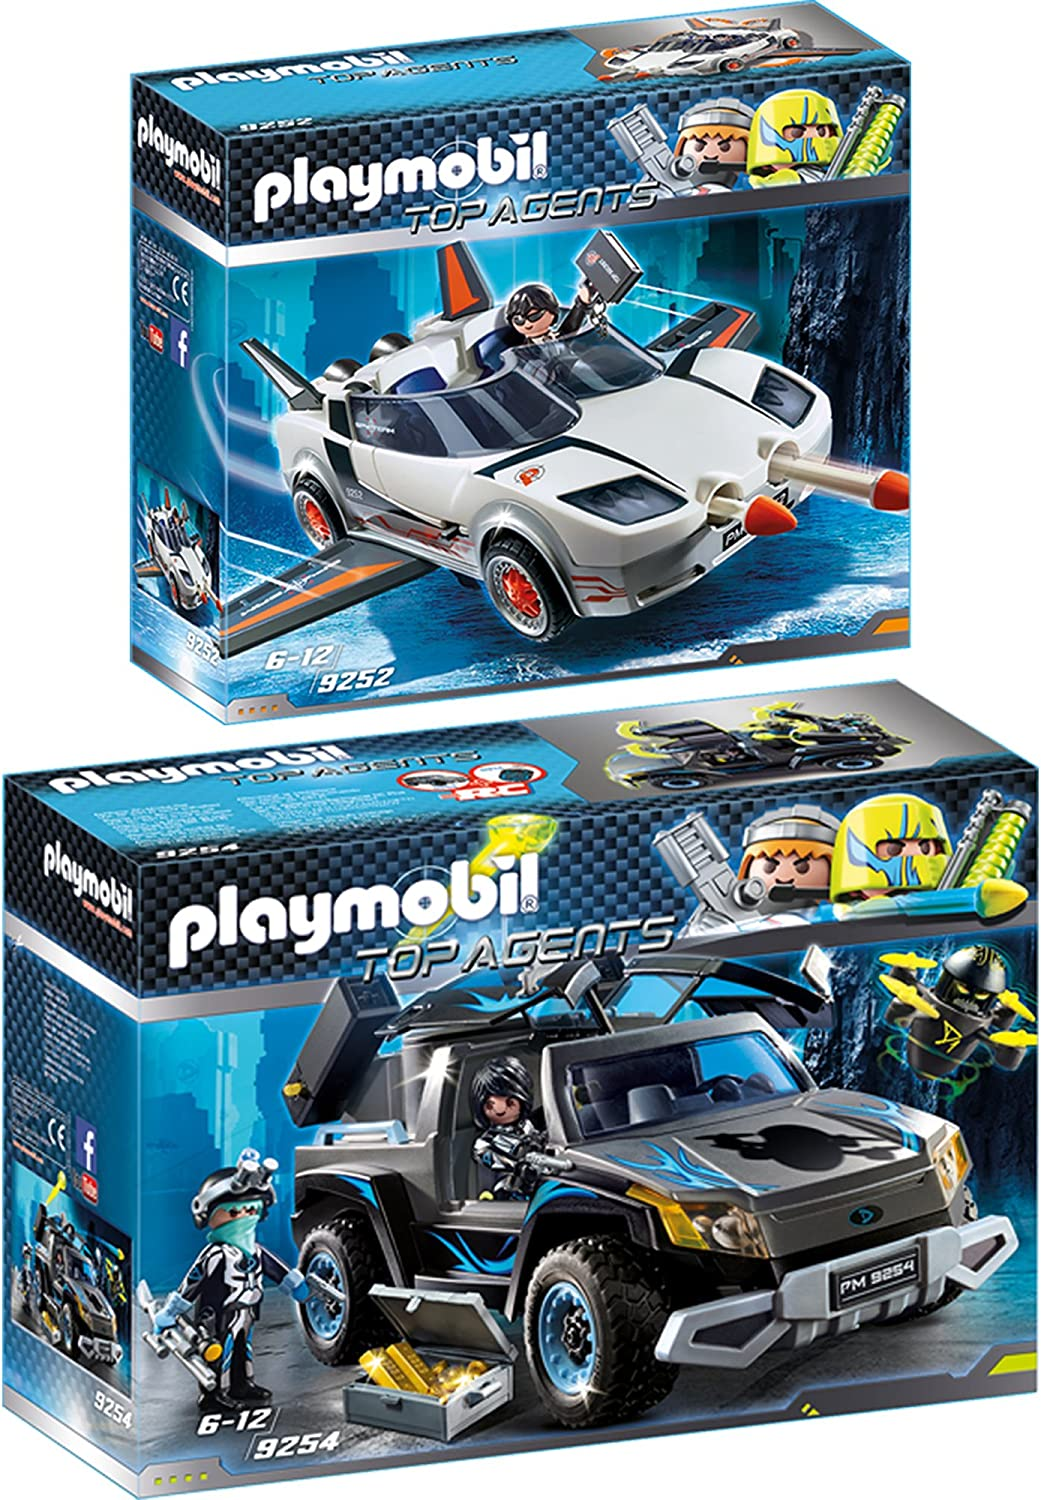 Playmobil Top Agents 2pcs. Set 9252 9254 Agent P. with Racer + Dr. Drone's Pickup